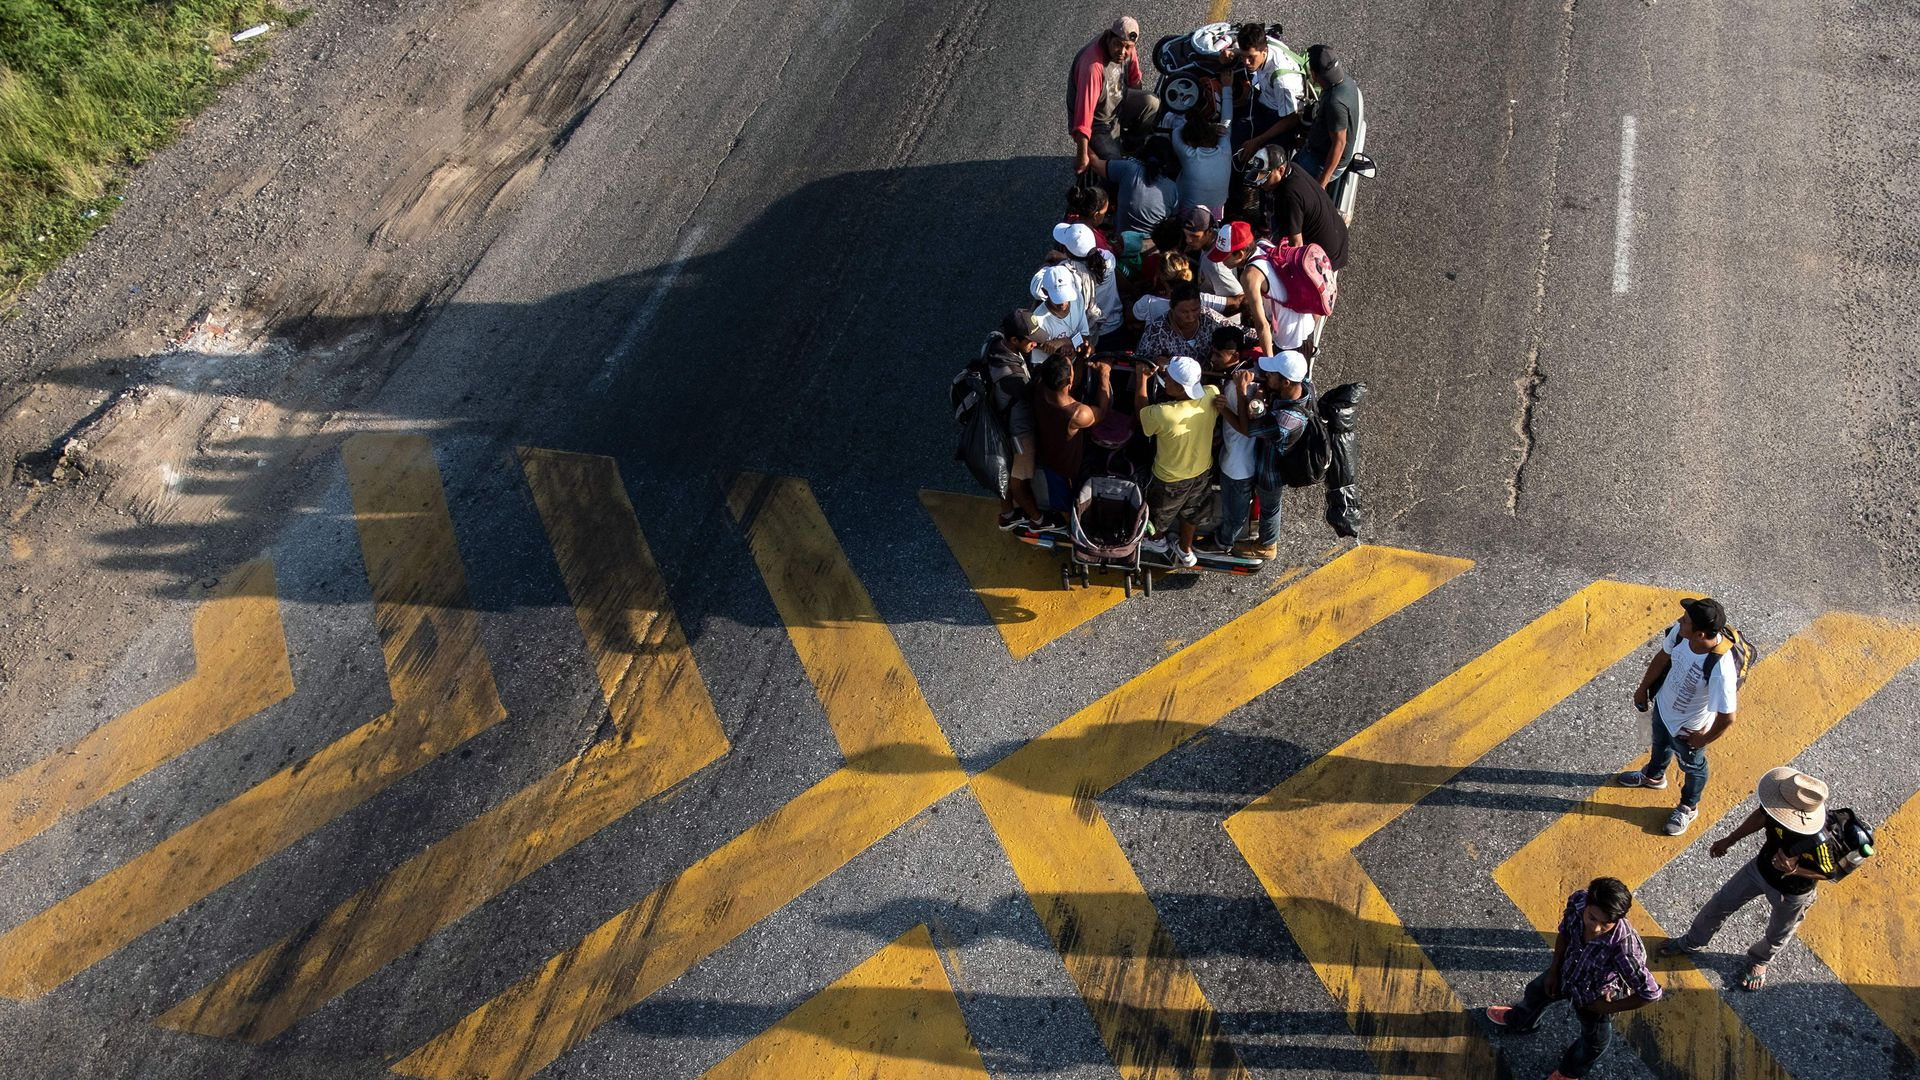 An aerial shot of a truck on a road with Central American migrants who are members of the caravan sitting on top of it